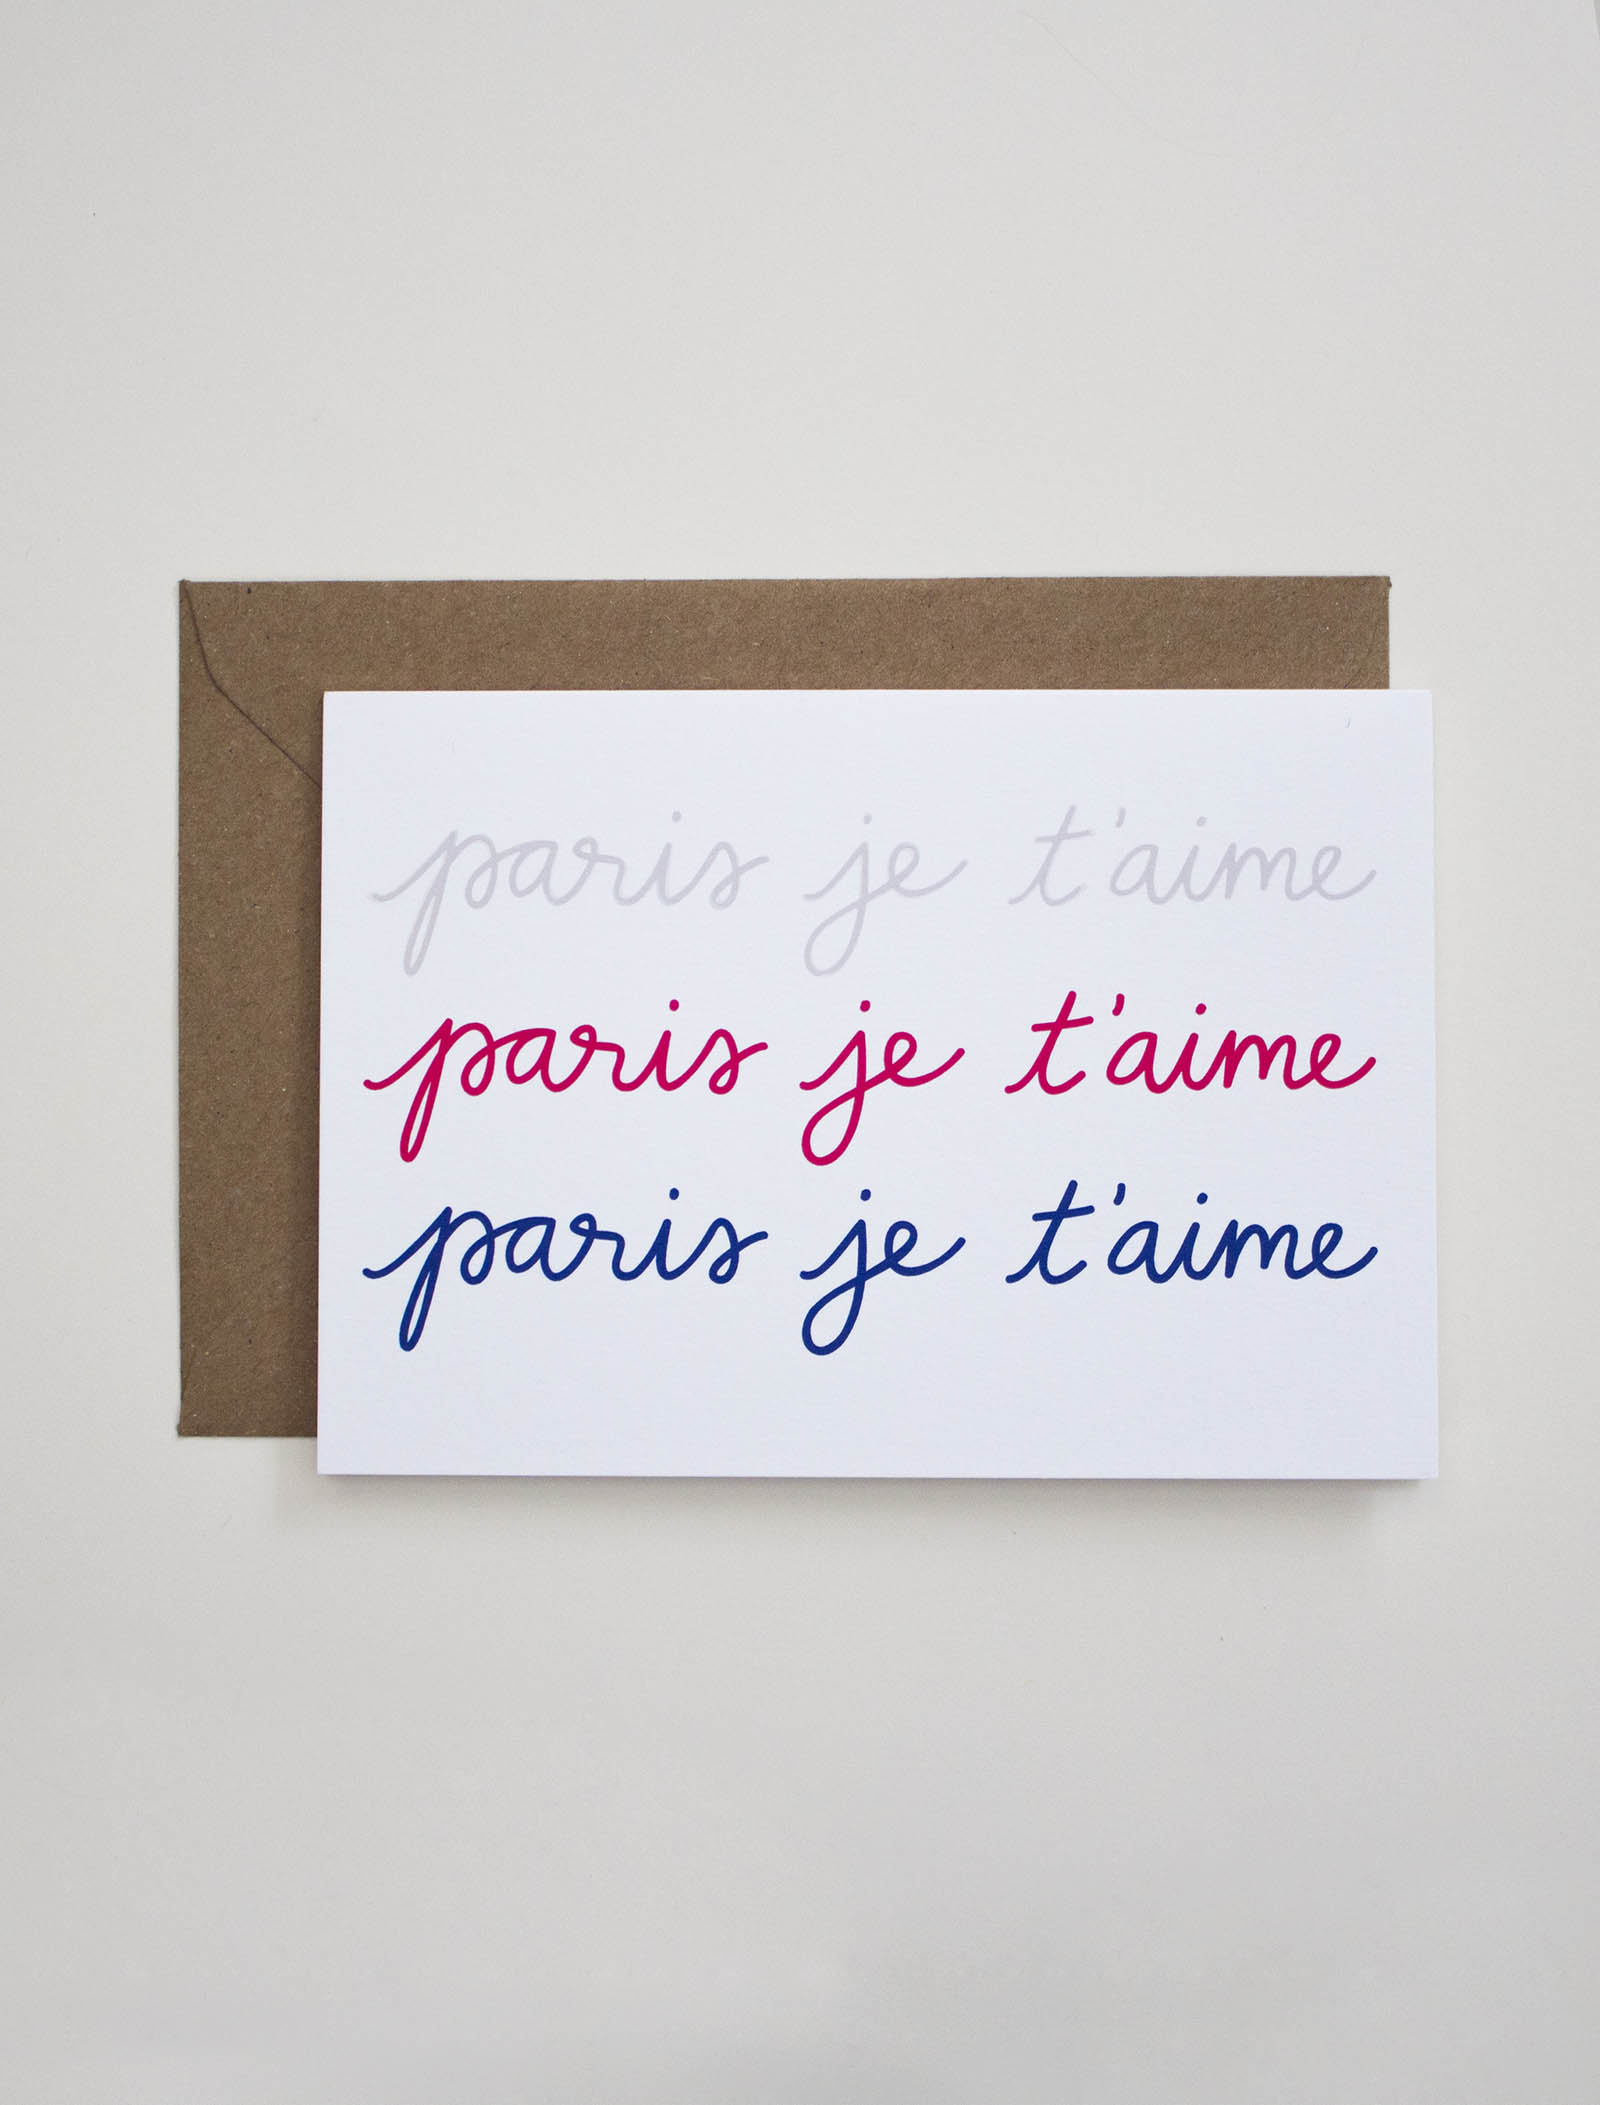 paris je t'aime_1